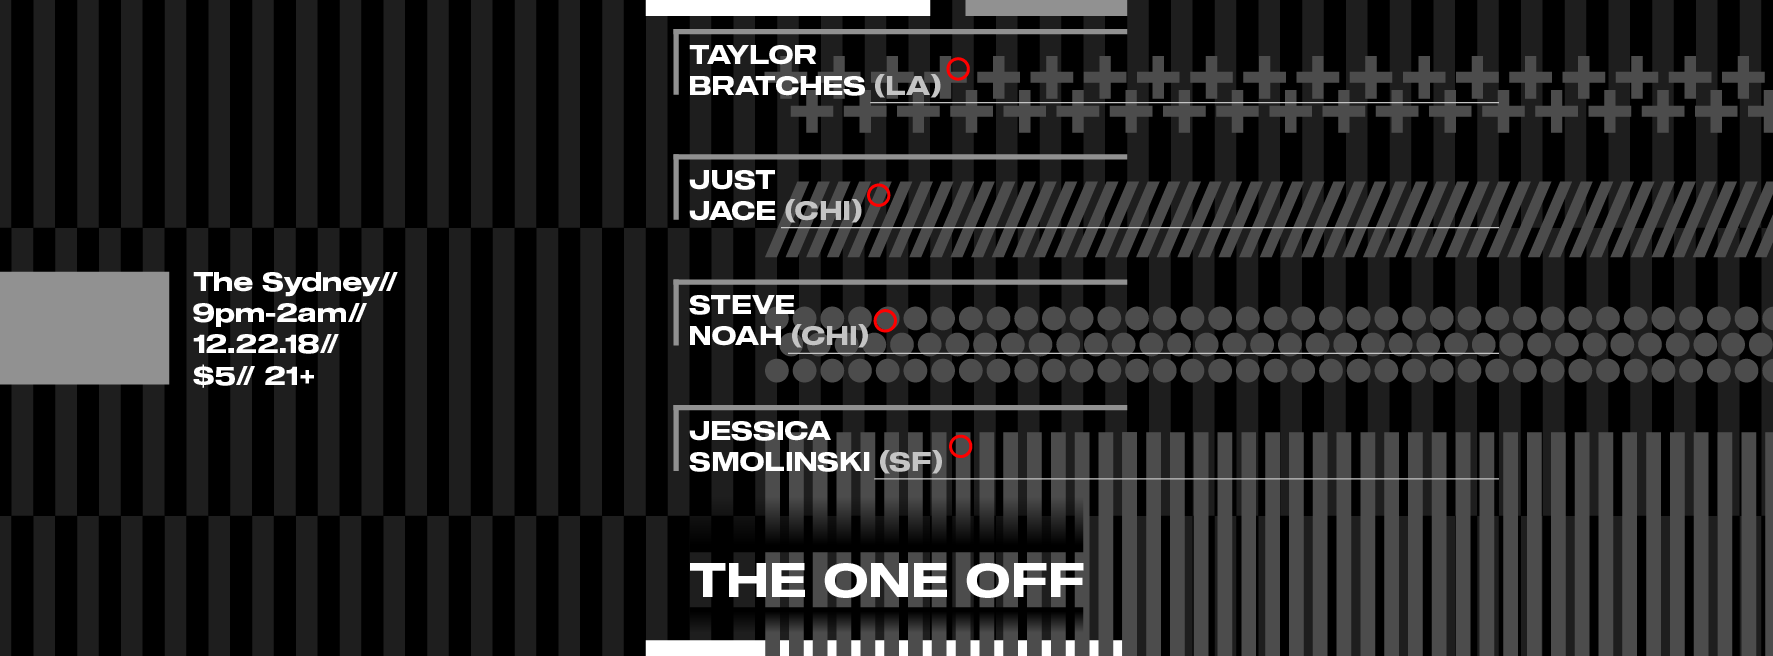 The One Off - Taylor Bratches - Cover Photo-01.png